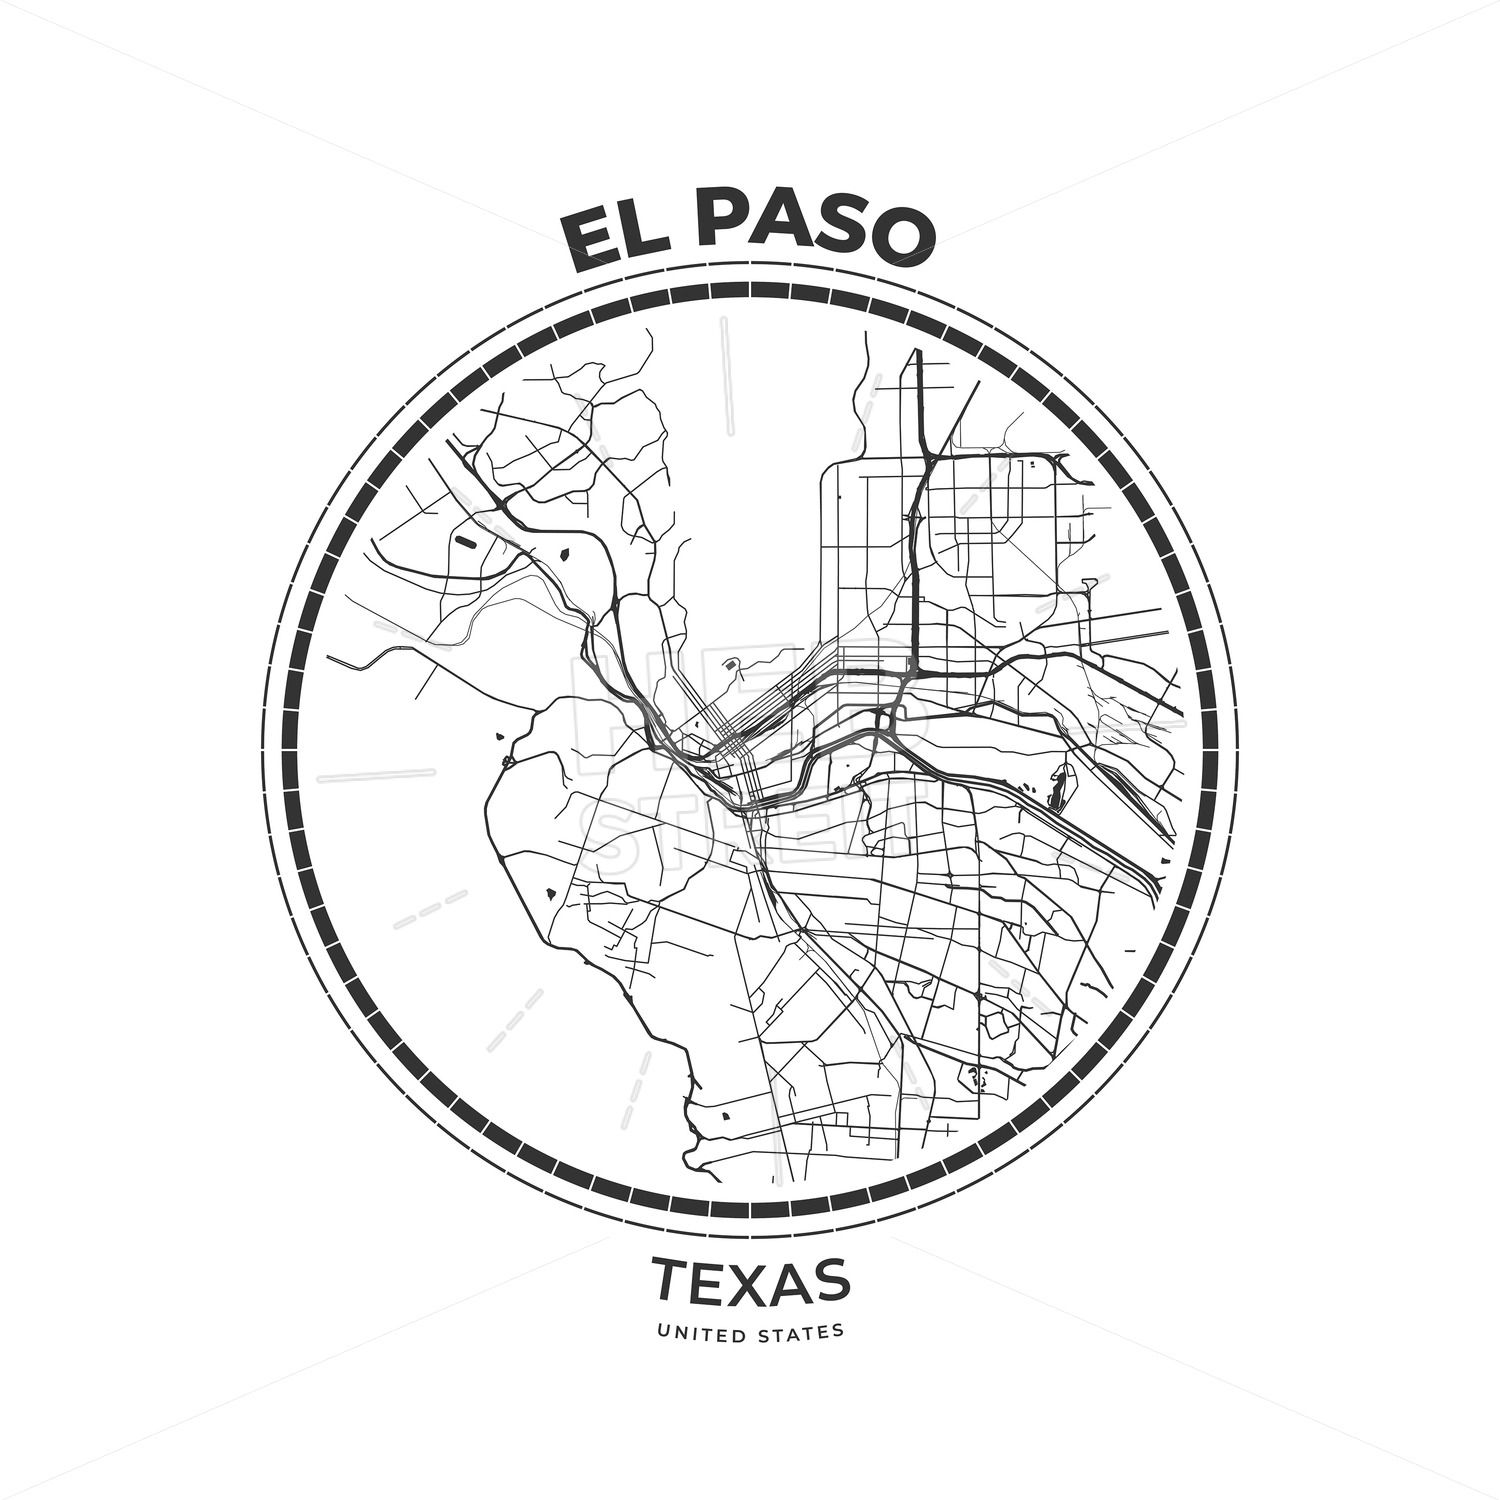 This is an image of Insane Labels El Paso Tx